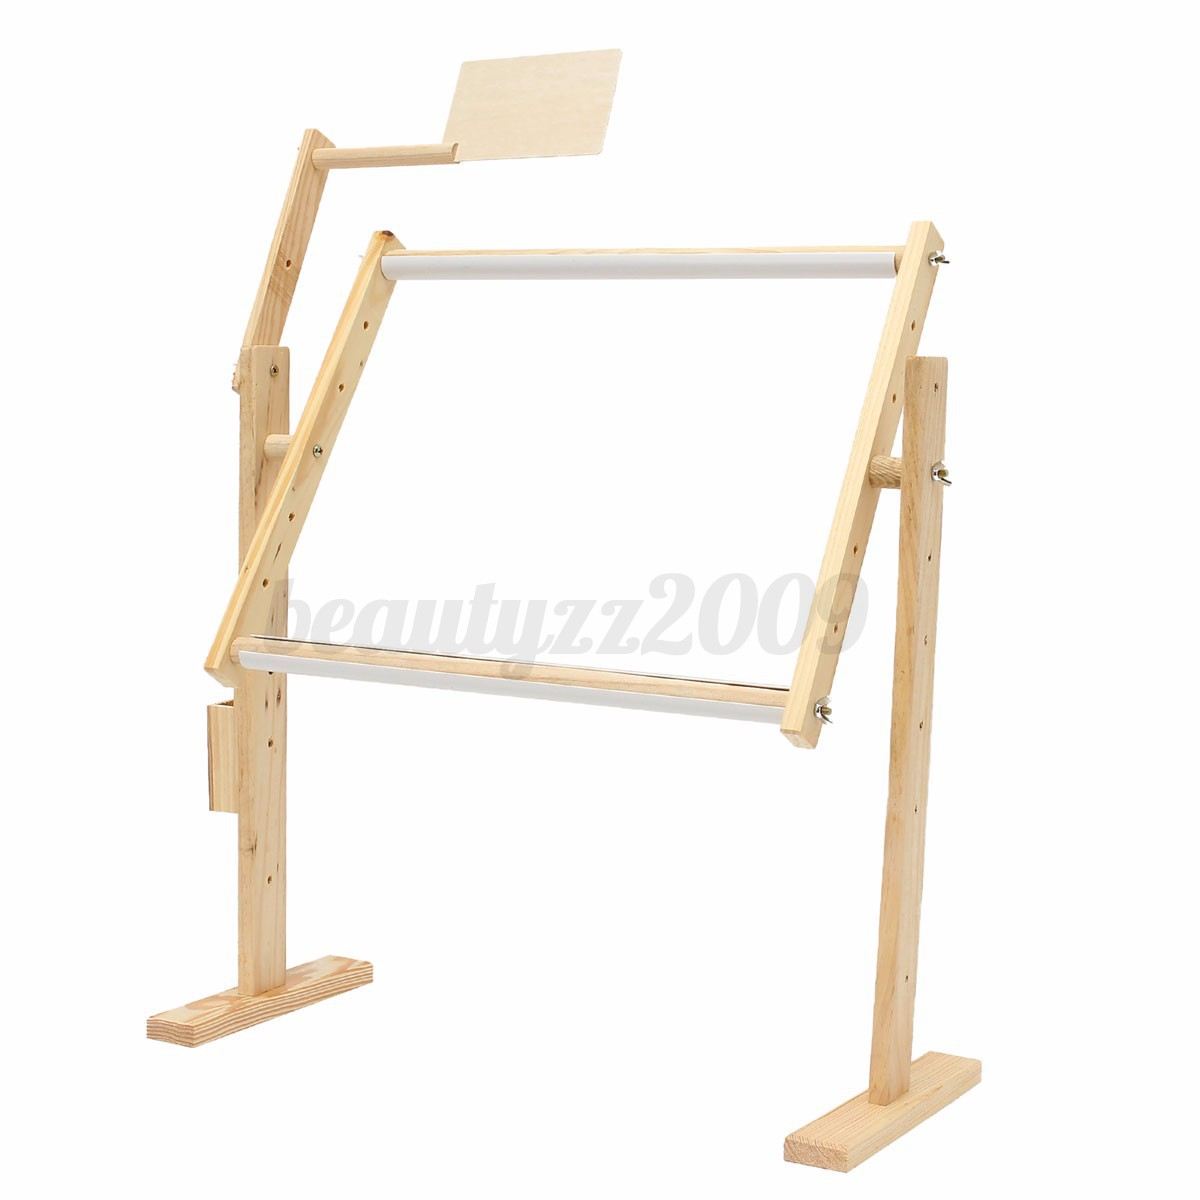 2 Size Wood Embroidery Floor Stand Tabletop Frame Hoop Cross Stitch Needle Craft | EBay